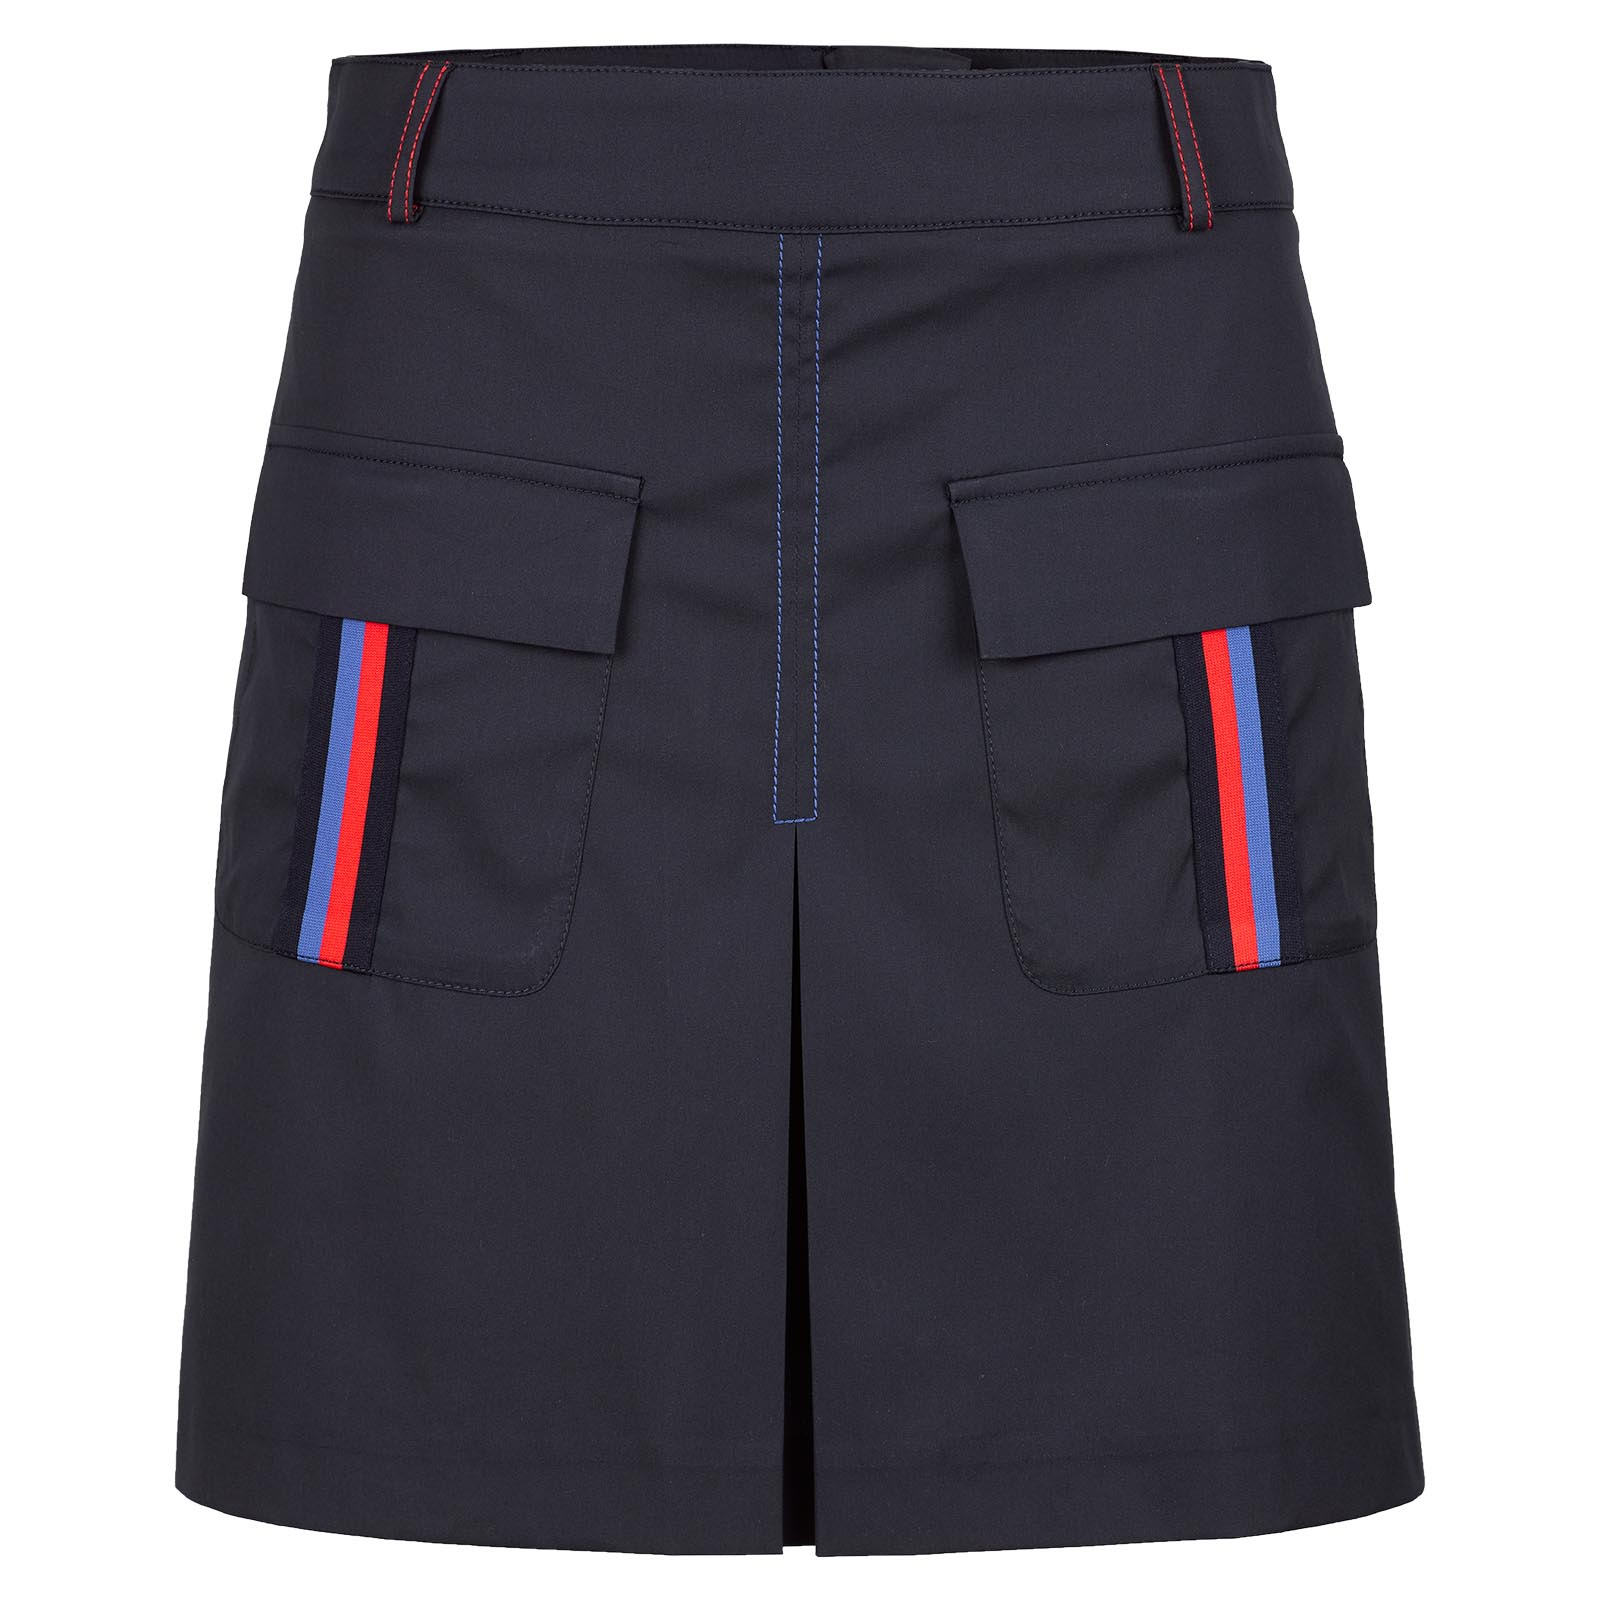 Retro Ladies' golf skort from Cotton blend with Light Techno Stretch